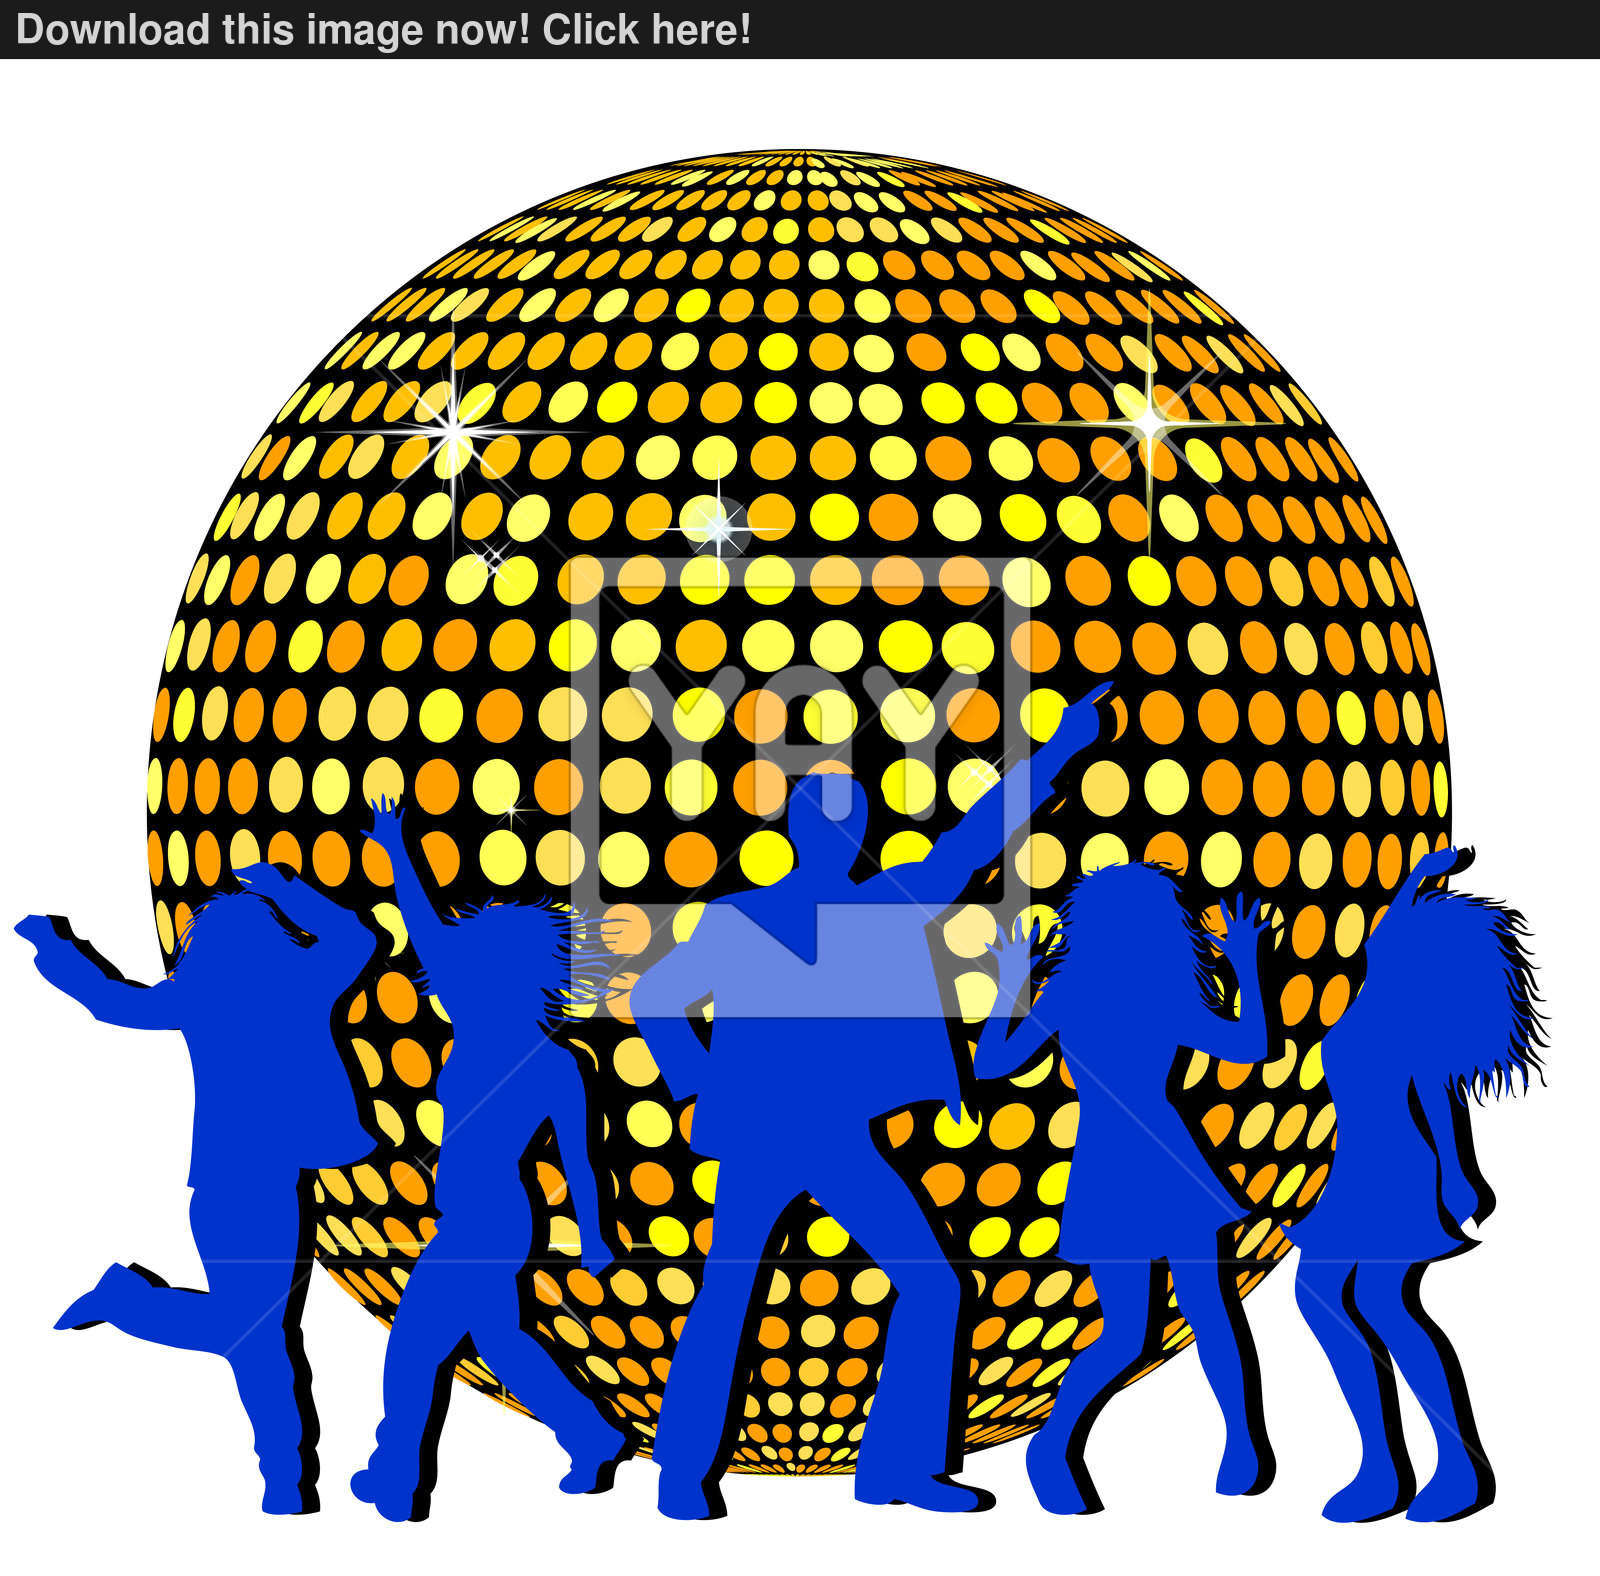 2 6 million people clipart graphic free stock Disco Ball and dancing People image | YayImages.com graphic free stock